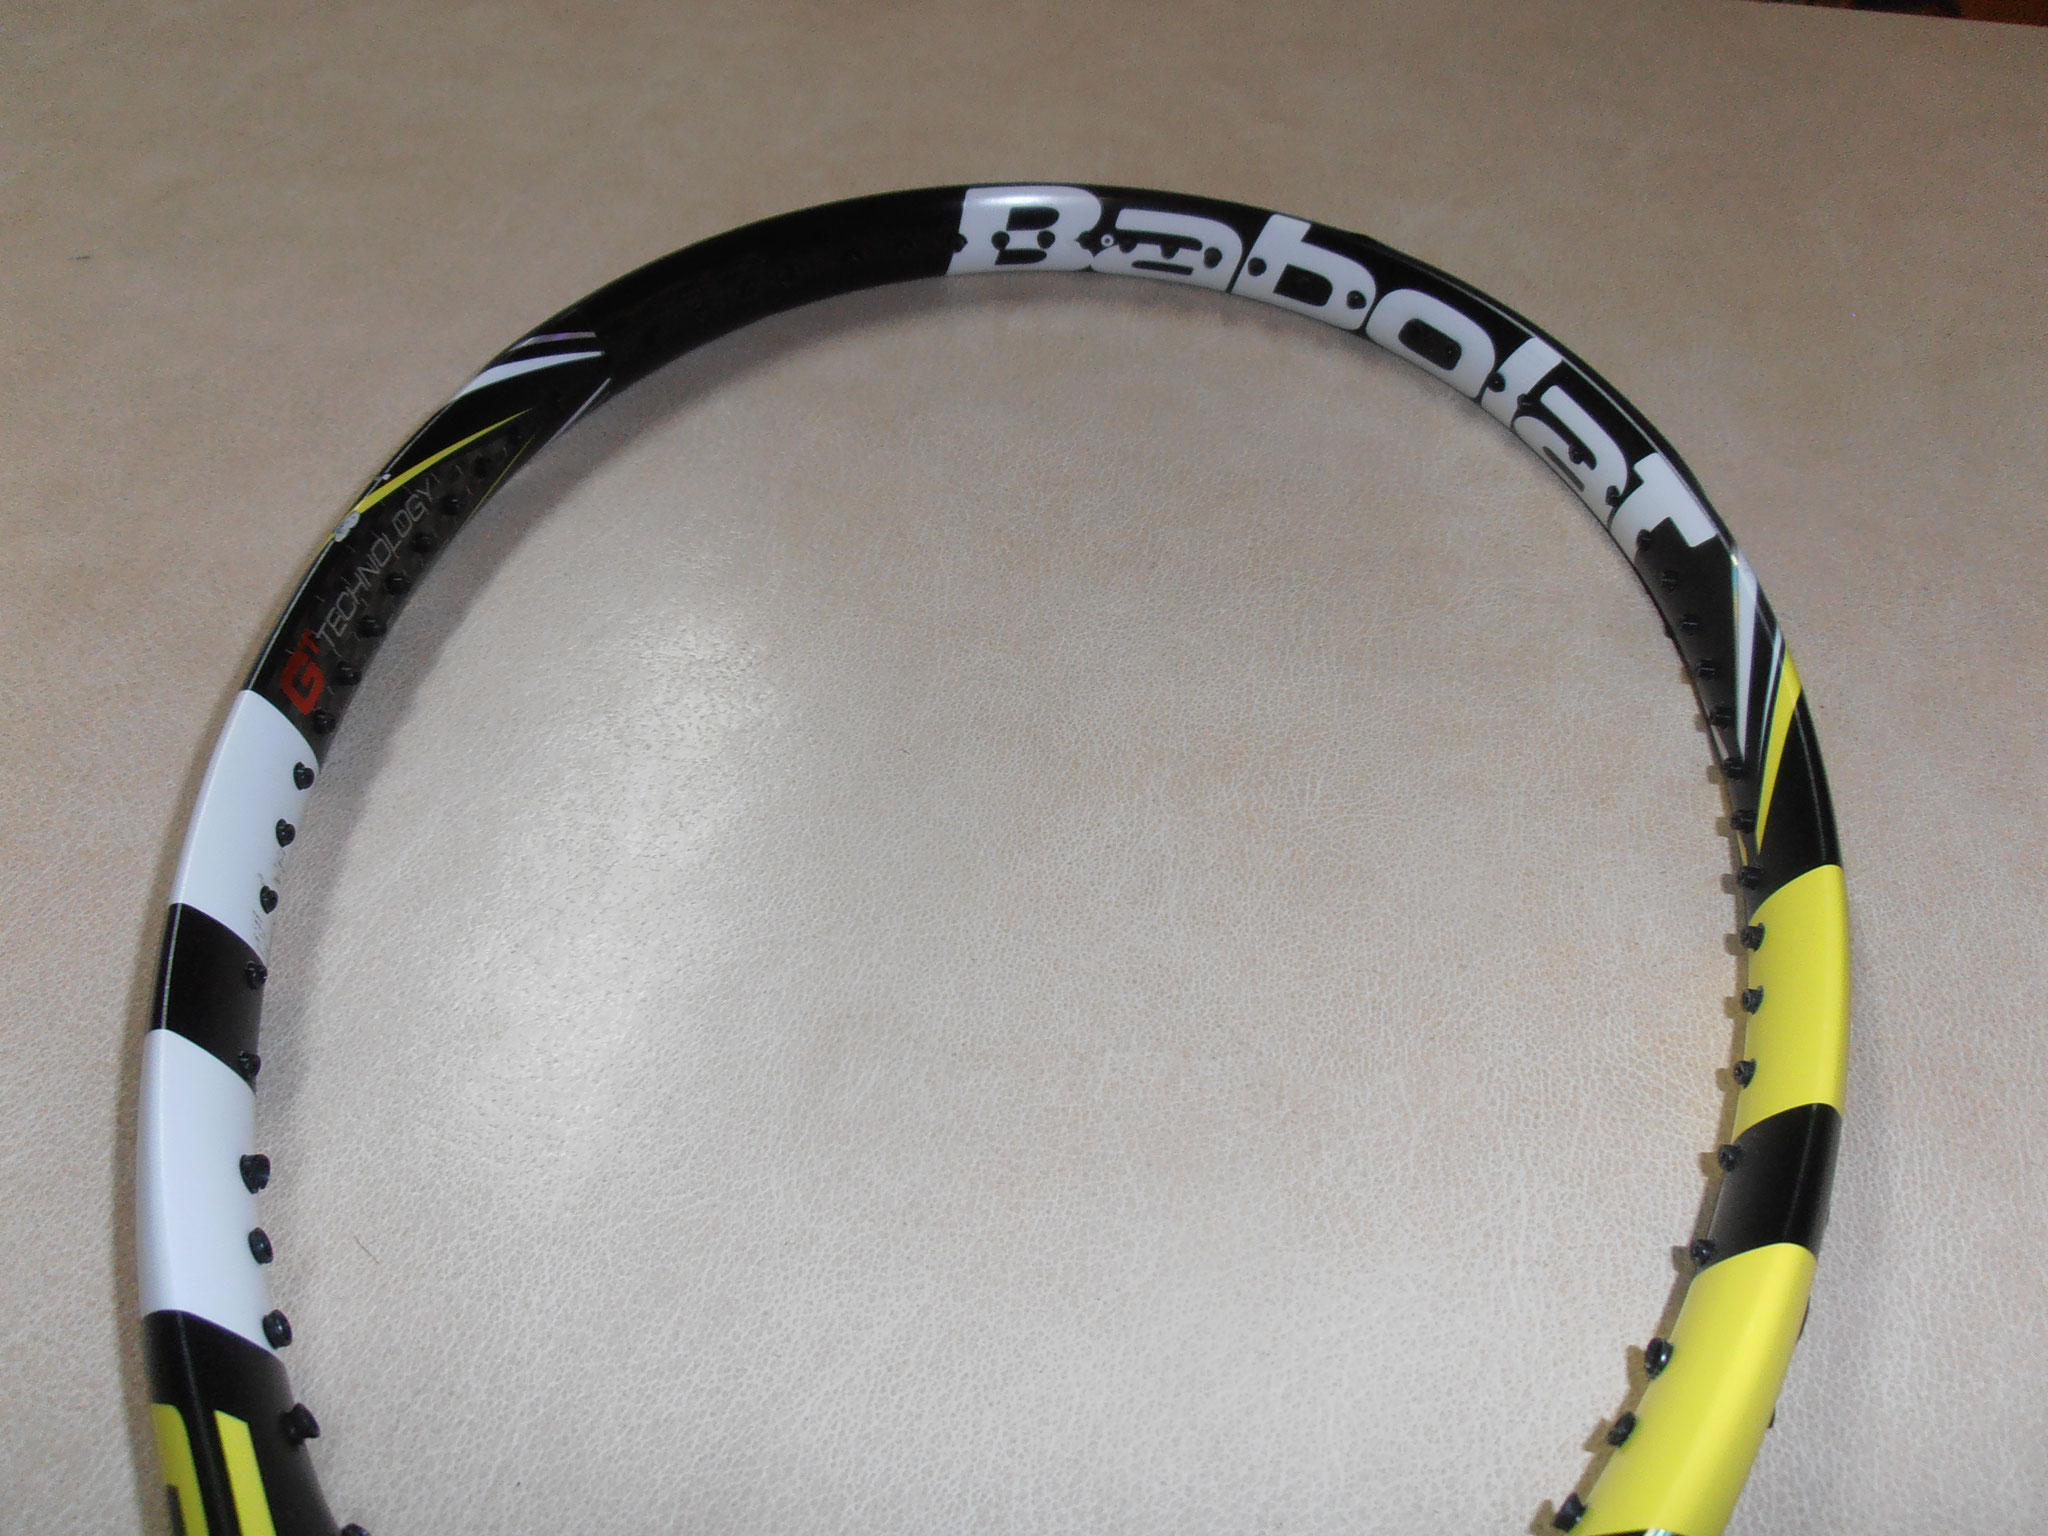 Tennis Racquet - After Repair